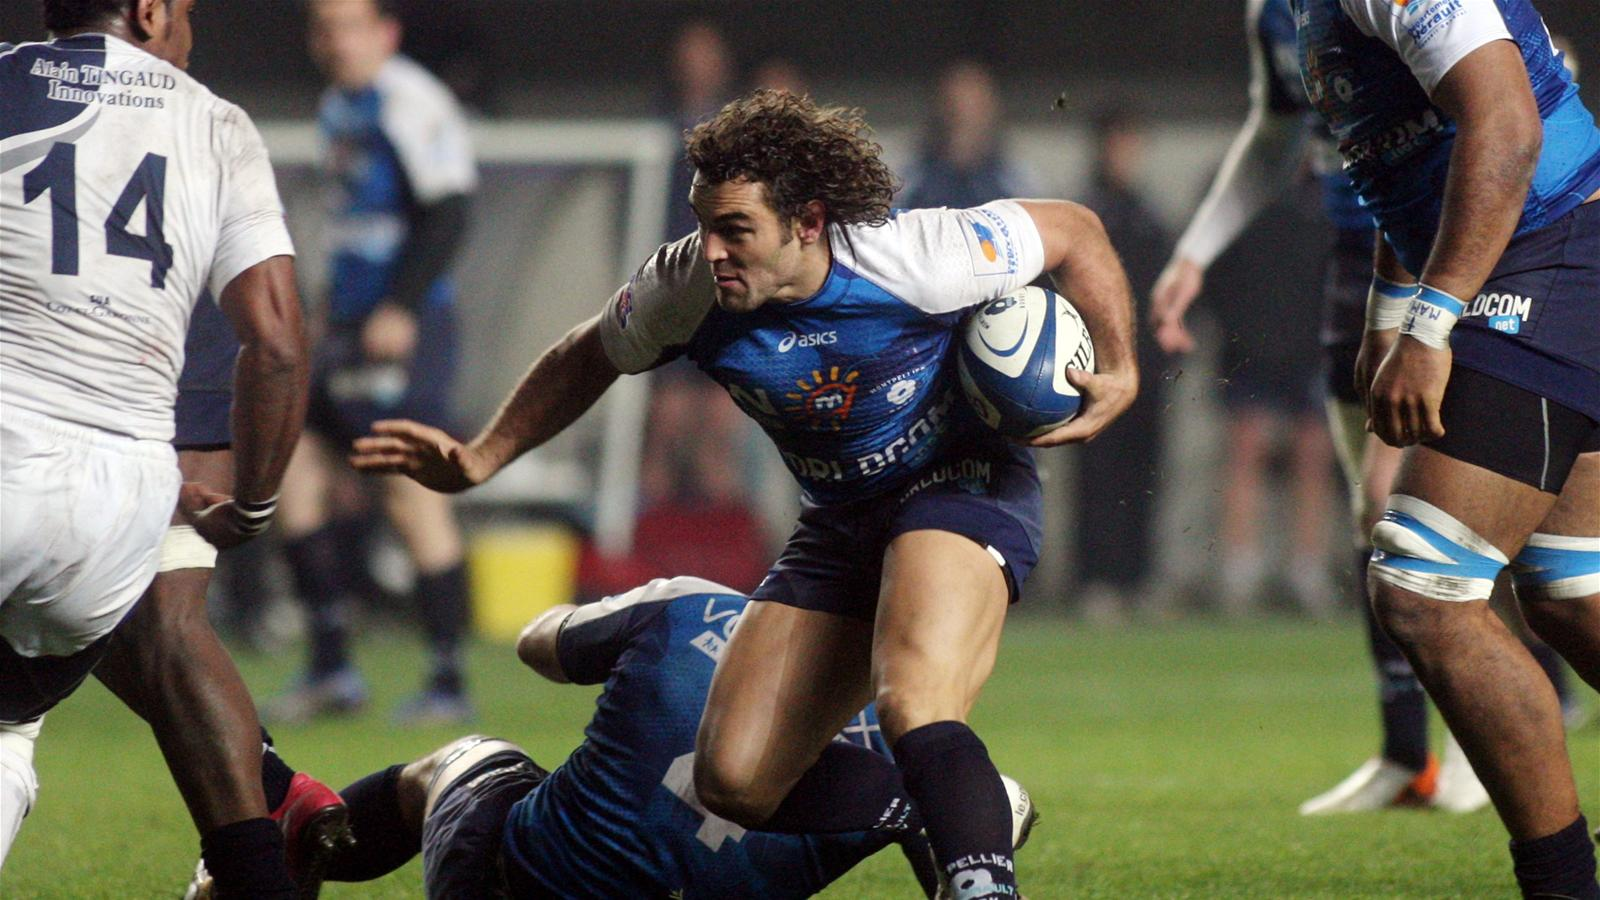 En direct live leinster montpellier coupe d 39 europe 21 janvier 2012 rugbyrama - Resultat rugby coupe europe ...